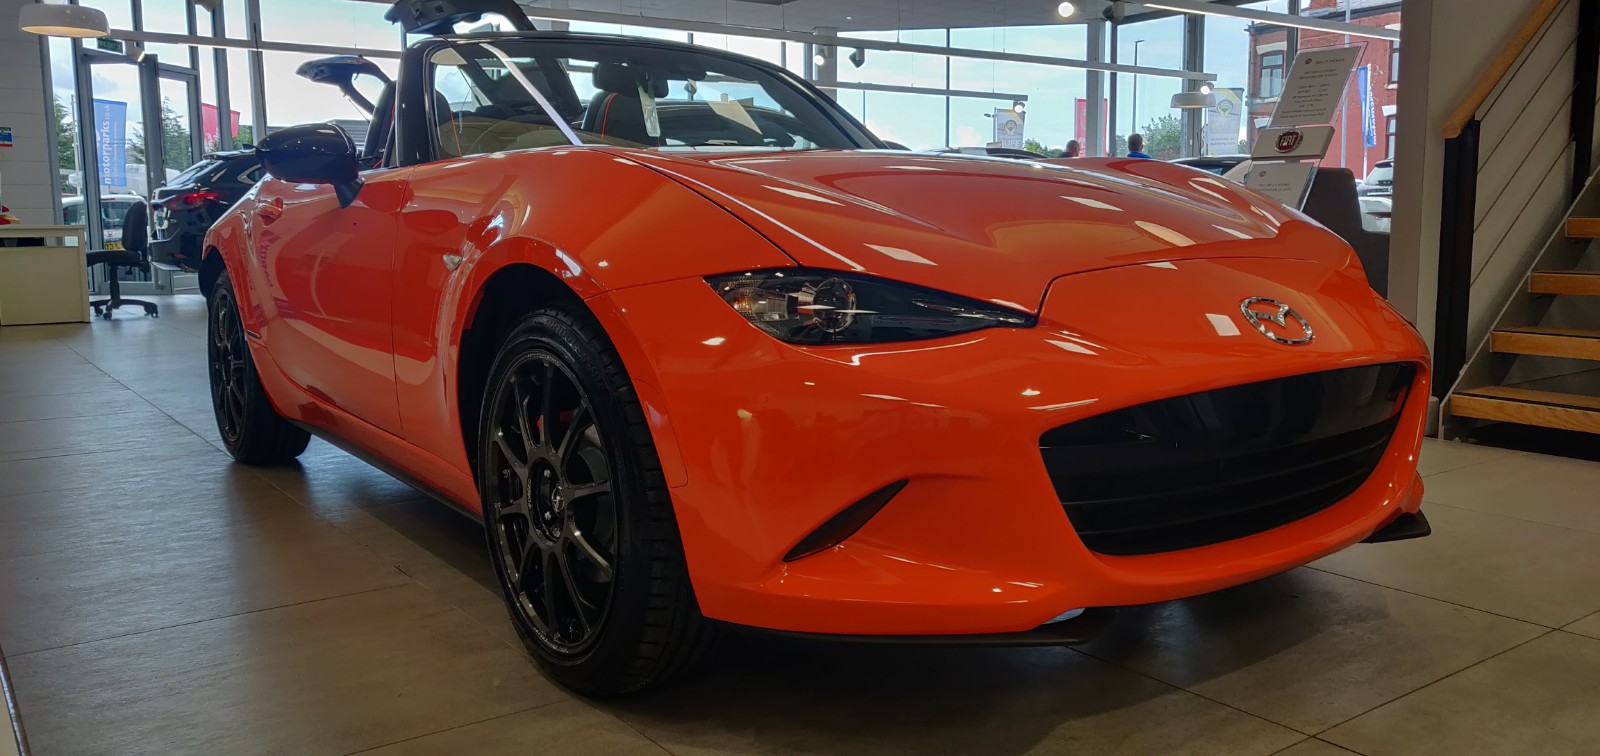 Mazda MX-5 RF 2.0 30th Anniversary SPECIAL EDITION 2 door Convertible (19MY)